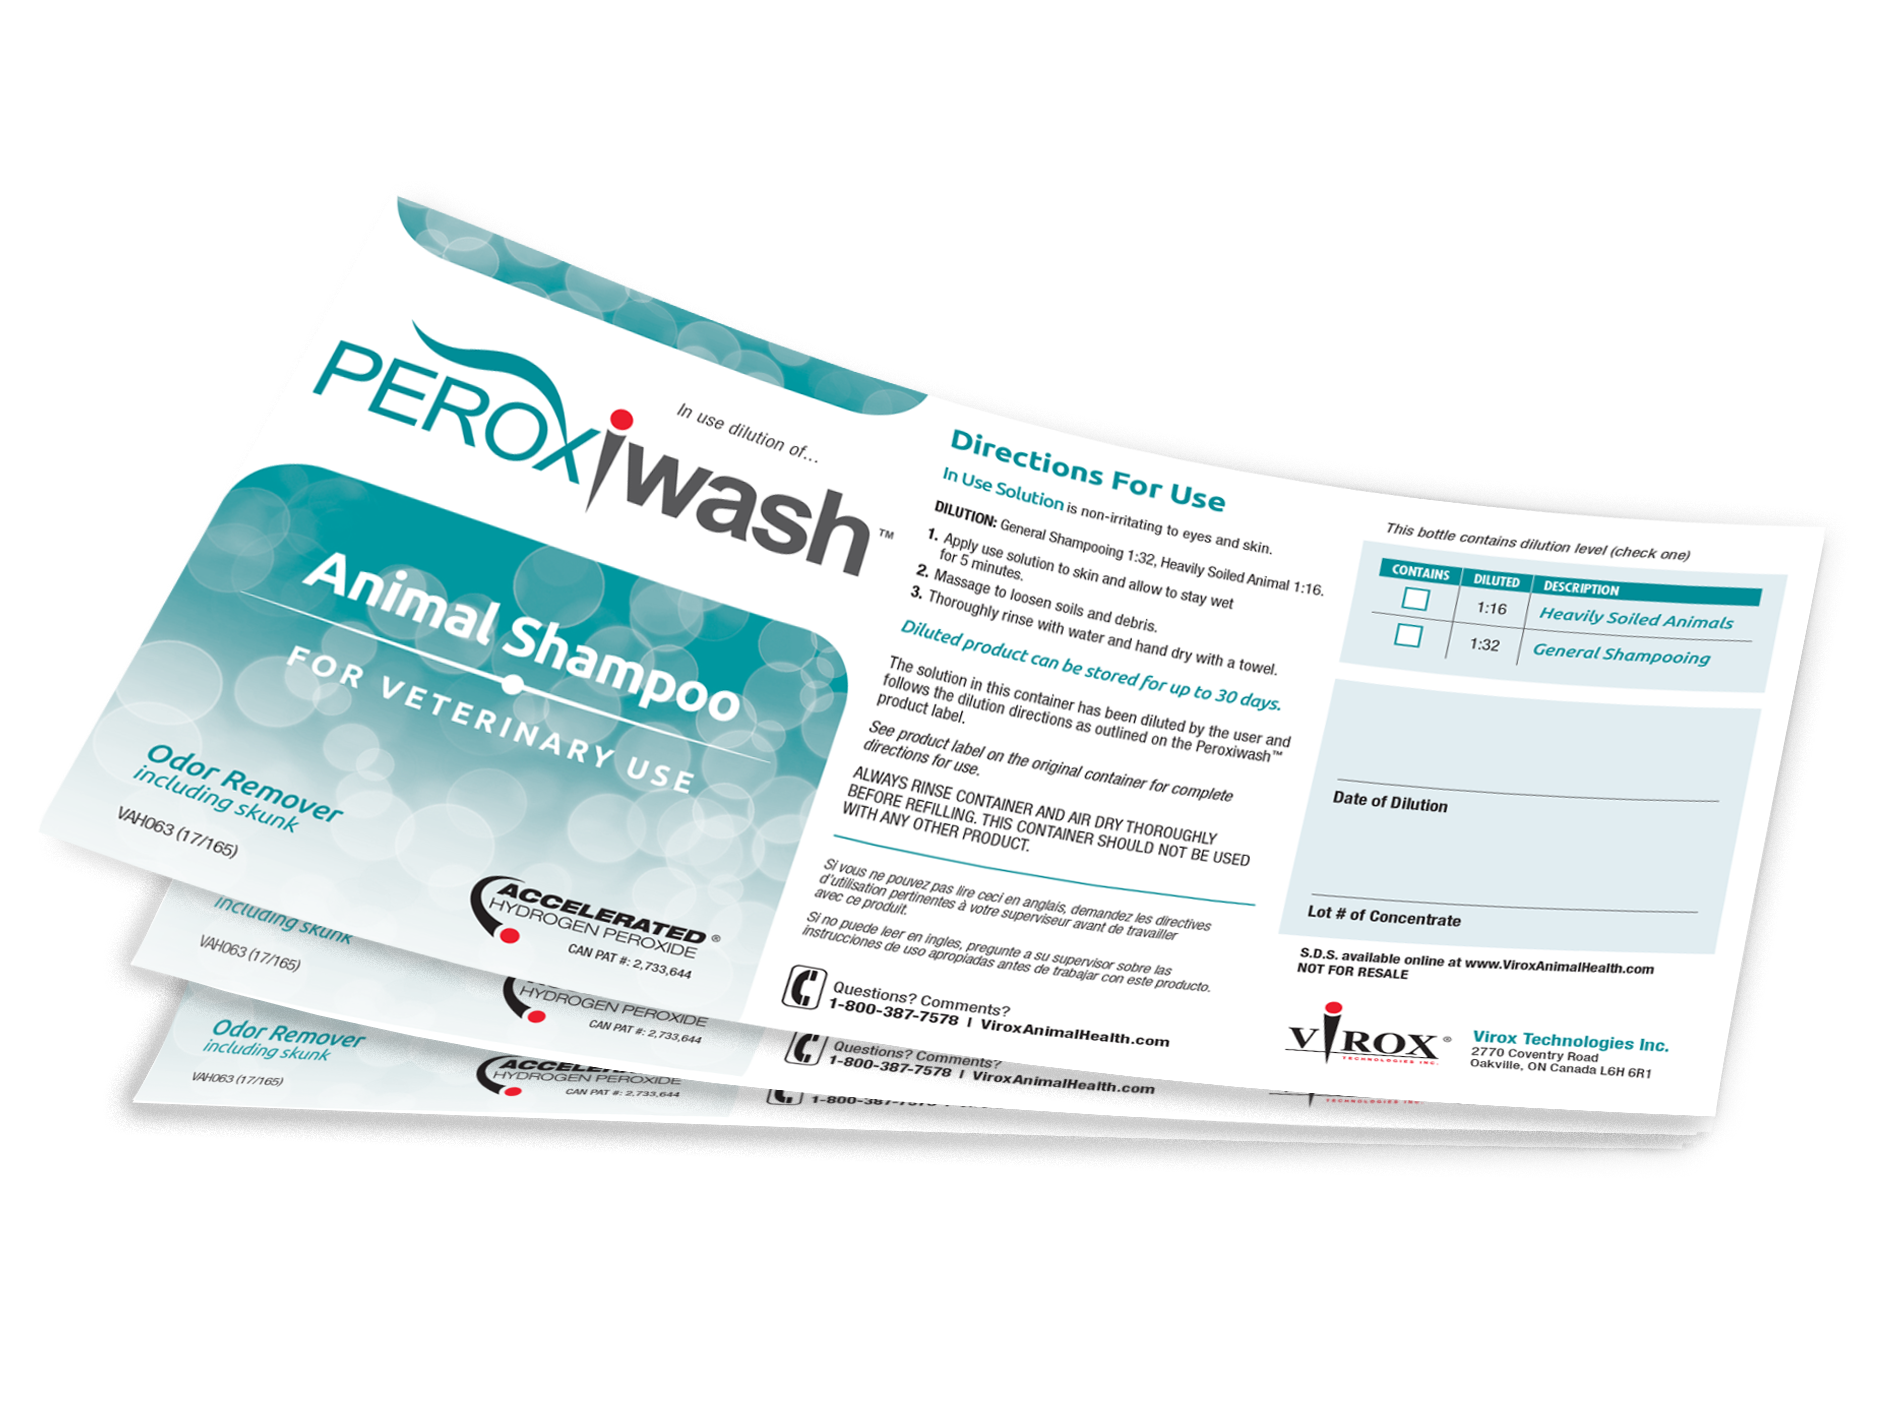 Peroxiwash-workplace-label-product-image.png